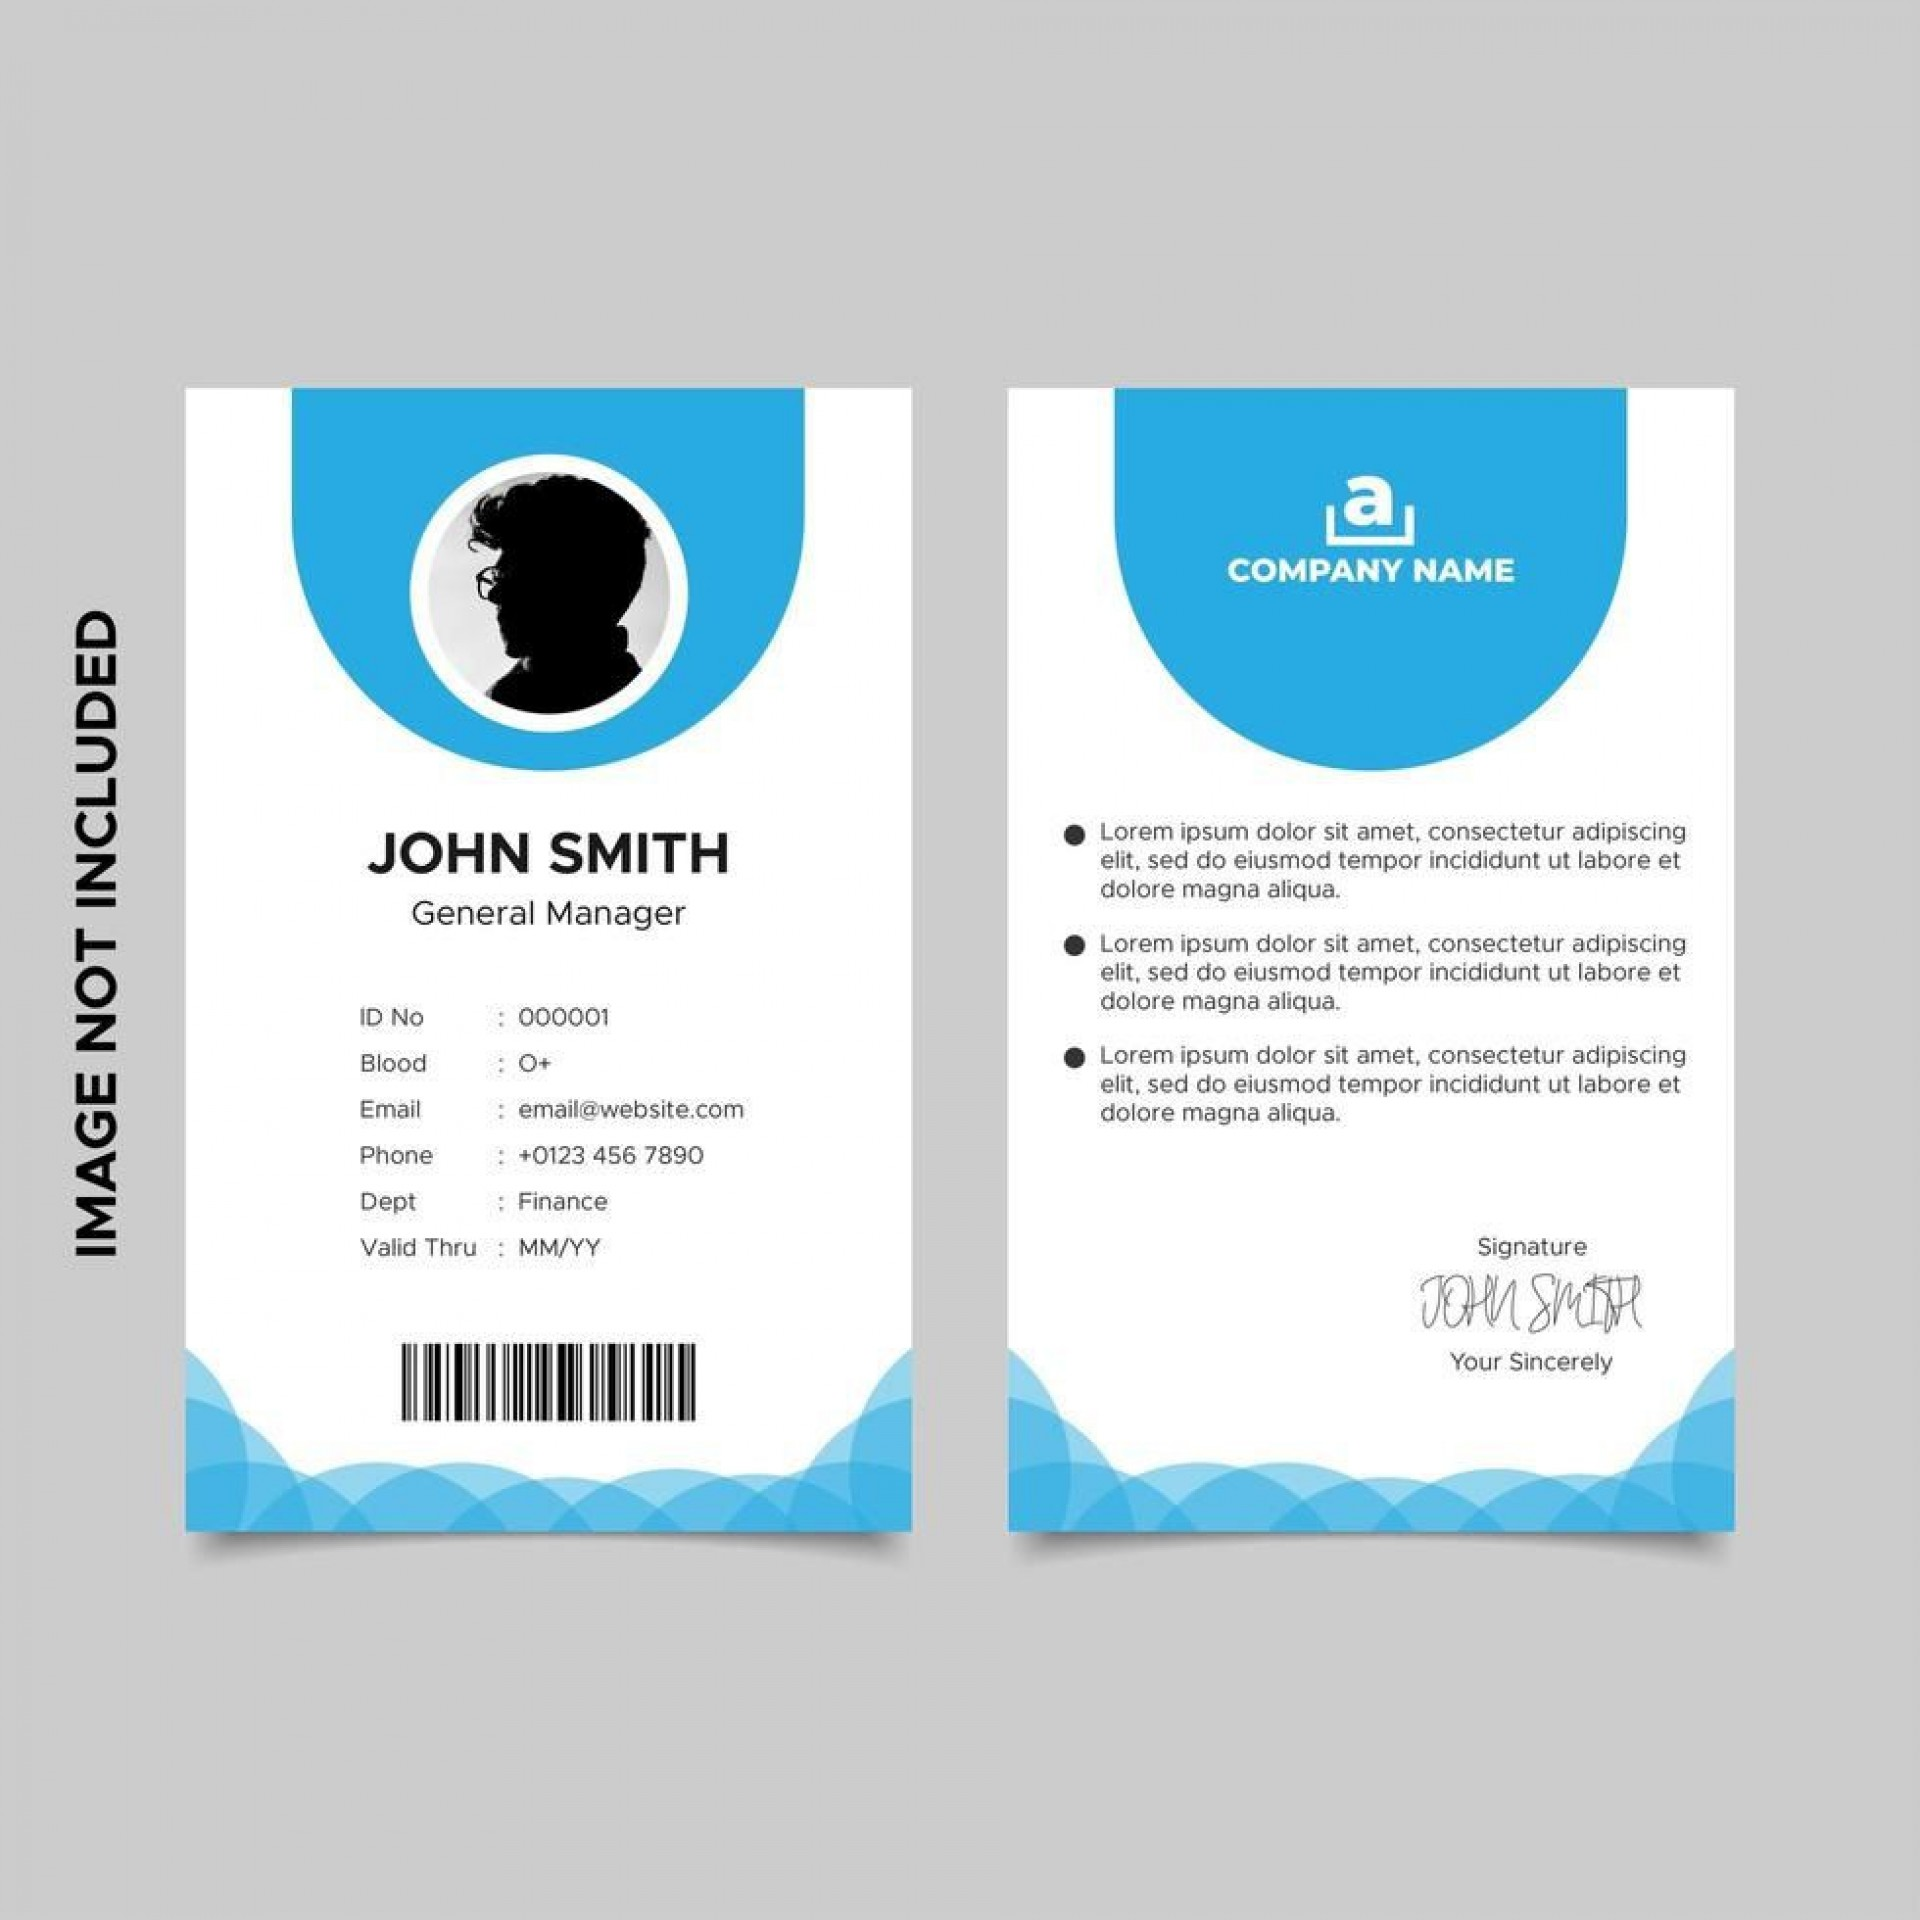 007 Archaicawful Id Card Template Free Download High Def  Design Photoshop Identity Student Word1920